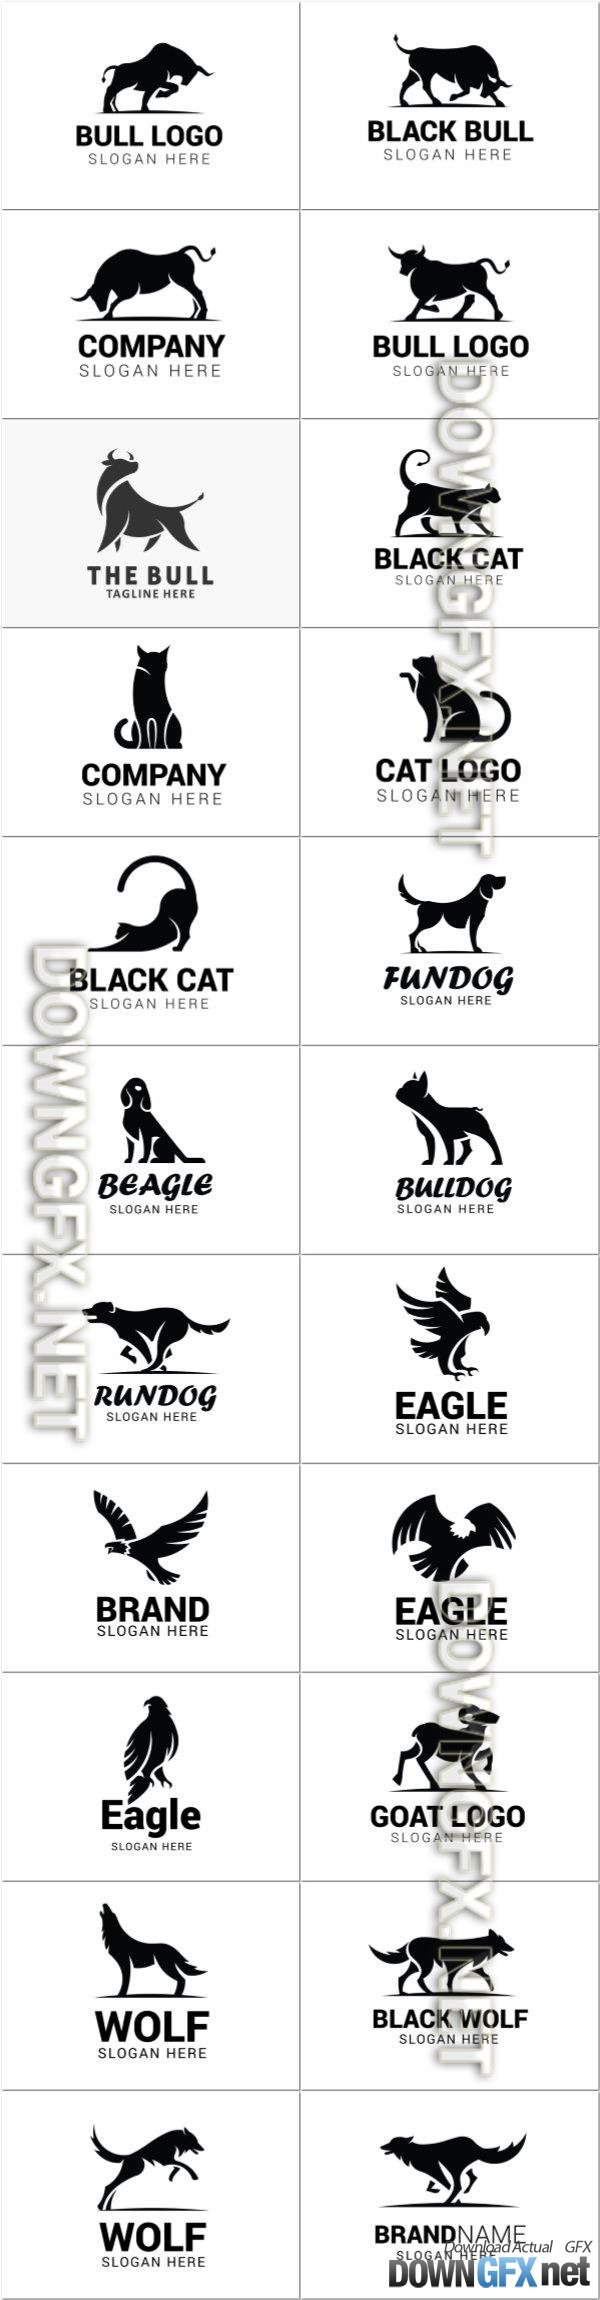 Vector logos with the image of animals for business companies